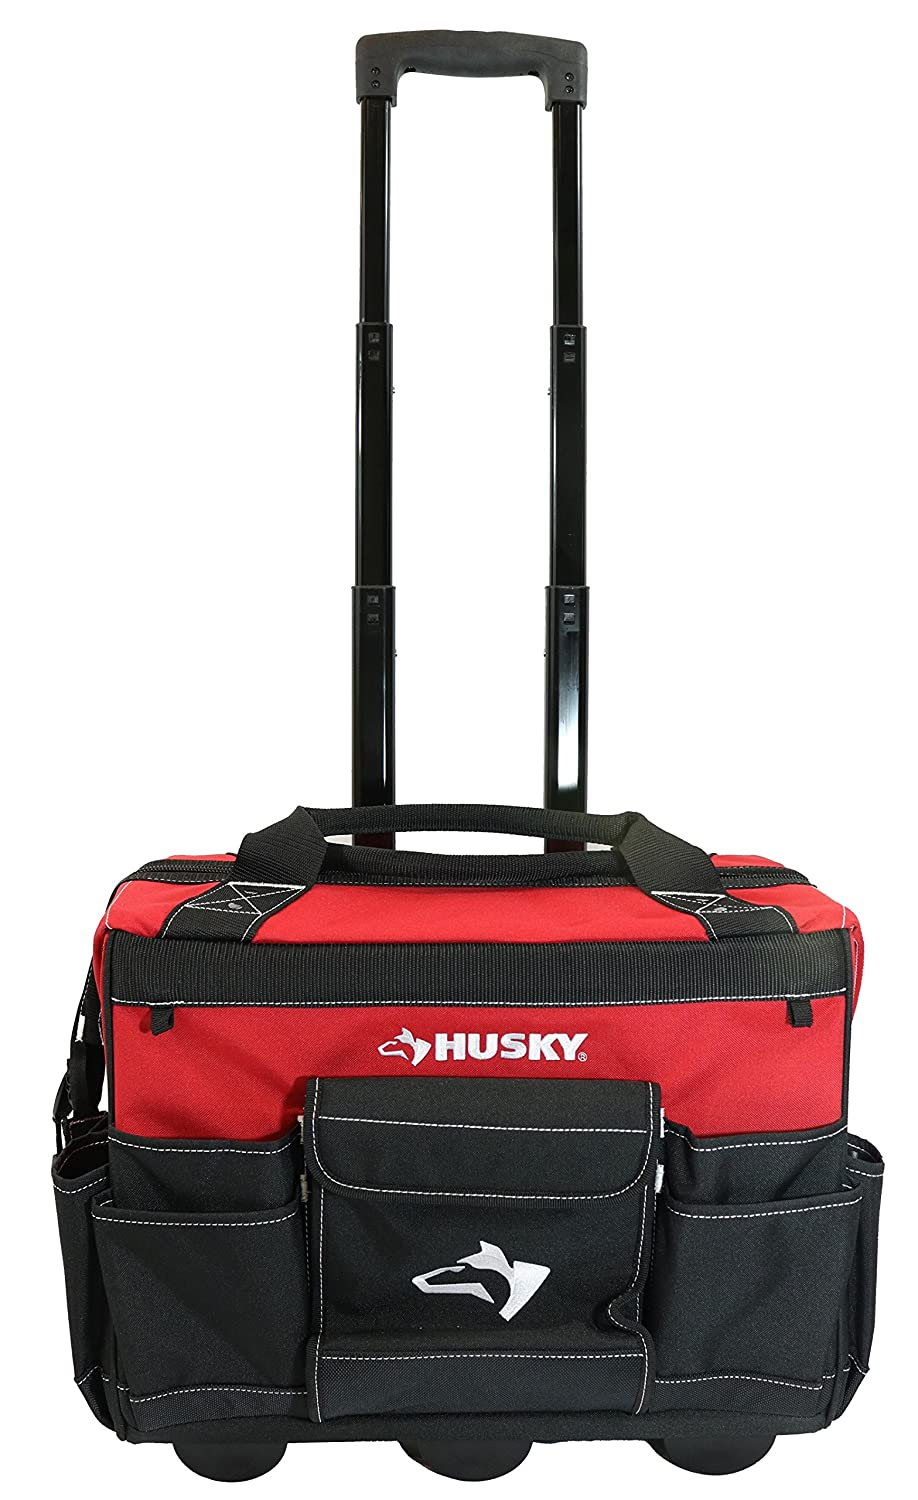 Husky 18 Inch 600-Denier Red Water Resistant Contractor's Rolling Tool Tote Bag w/ Telescoping Handle GP-43196N13